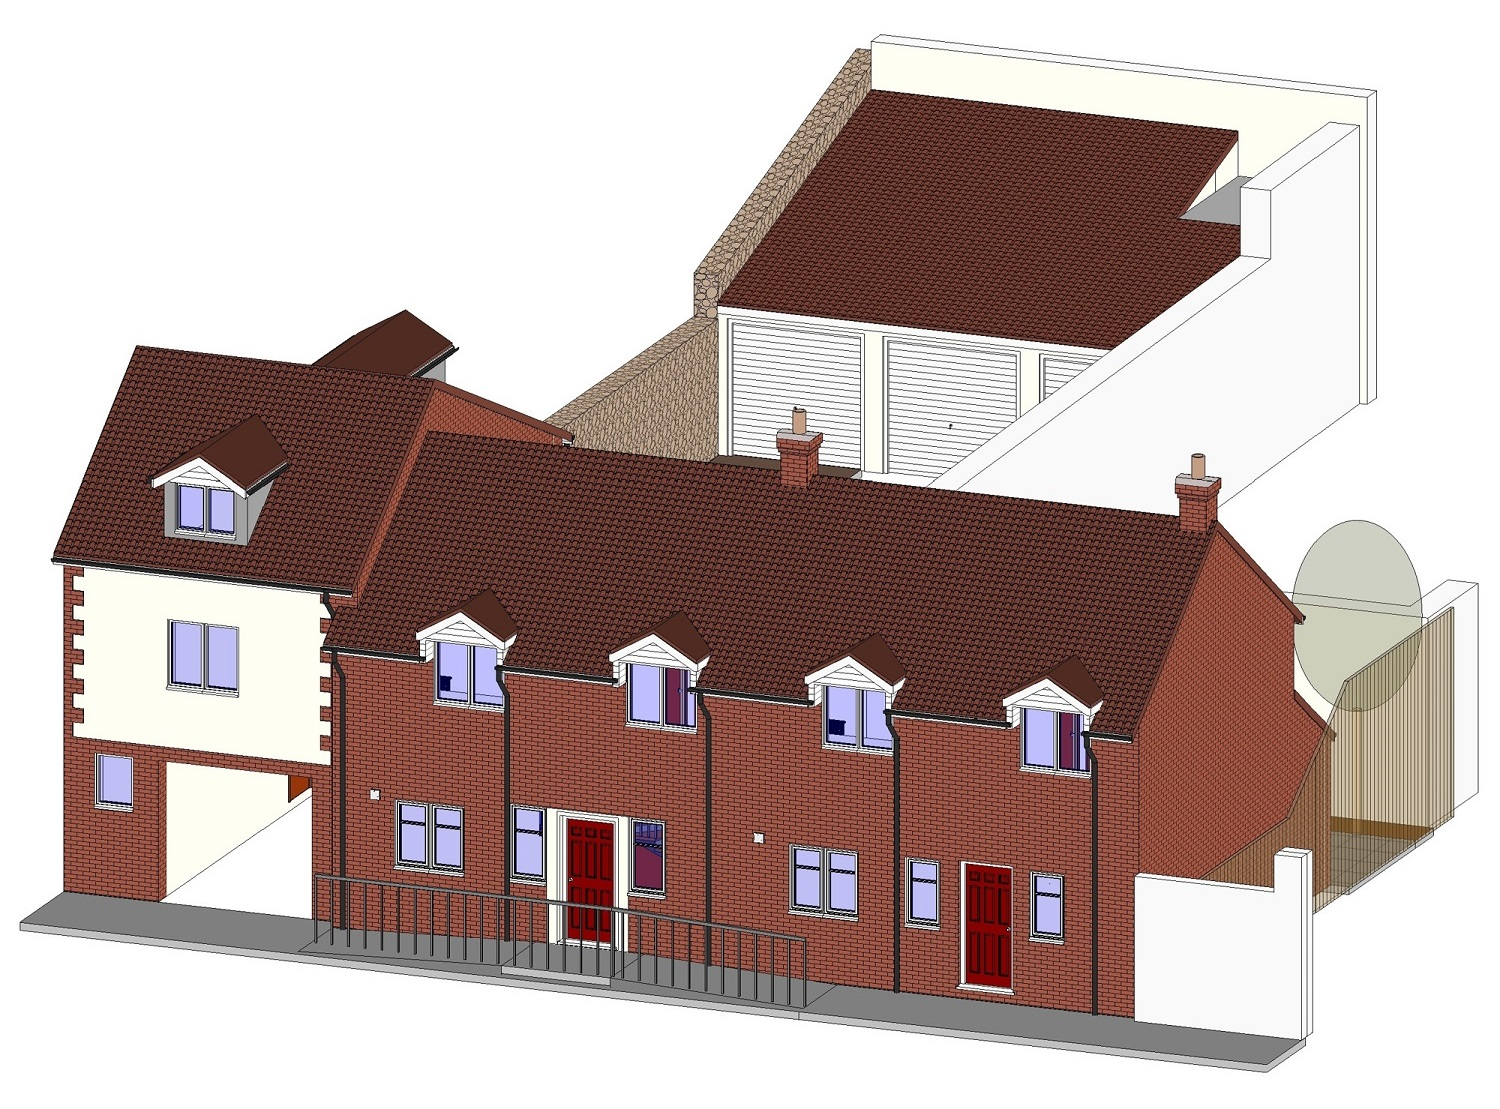 2 NEW HOUSES IN CONVERTED GP SURGERY - Hotwells, Charles Place